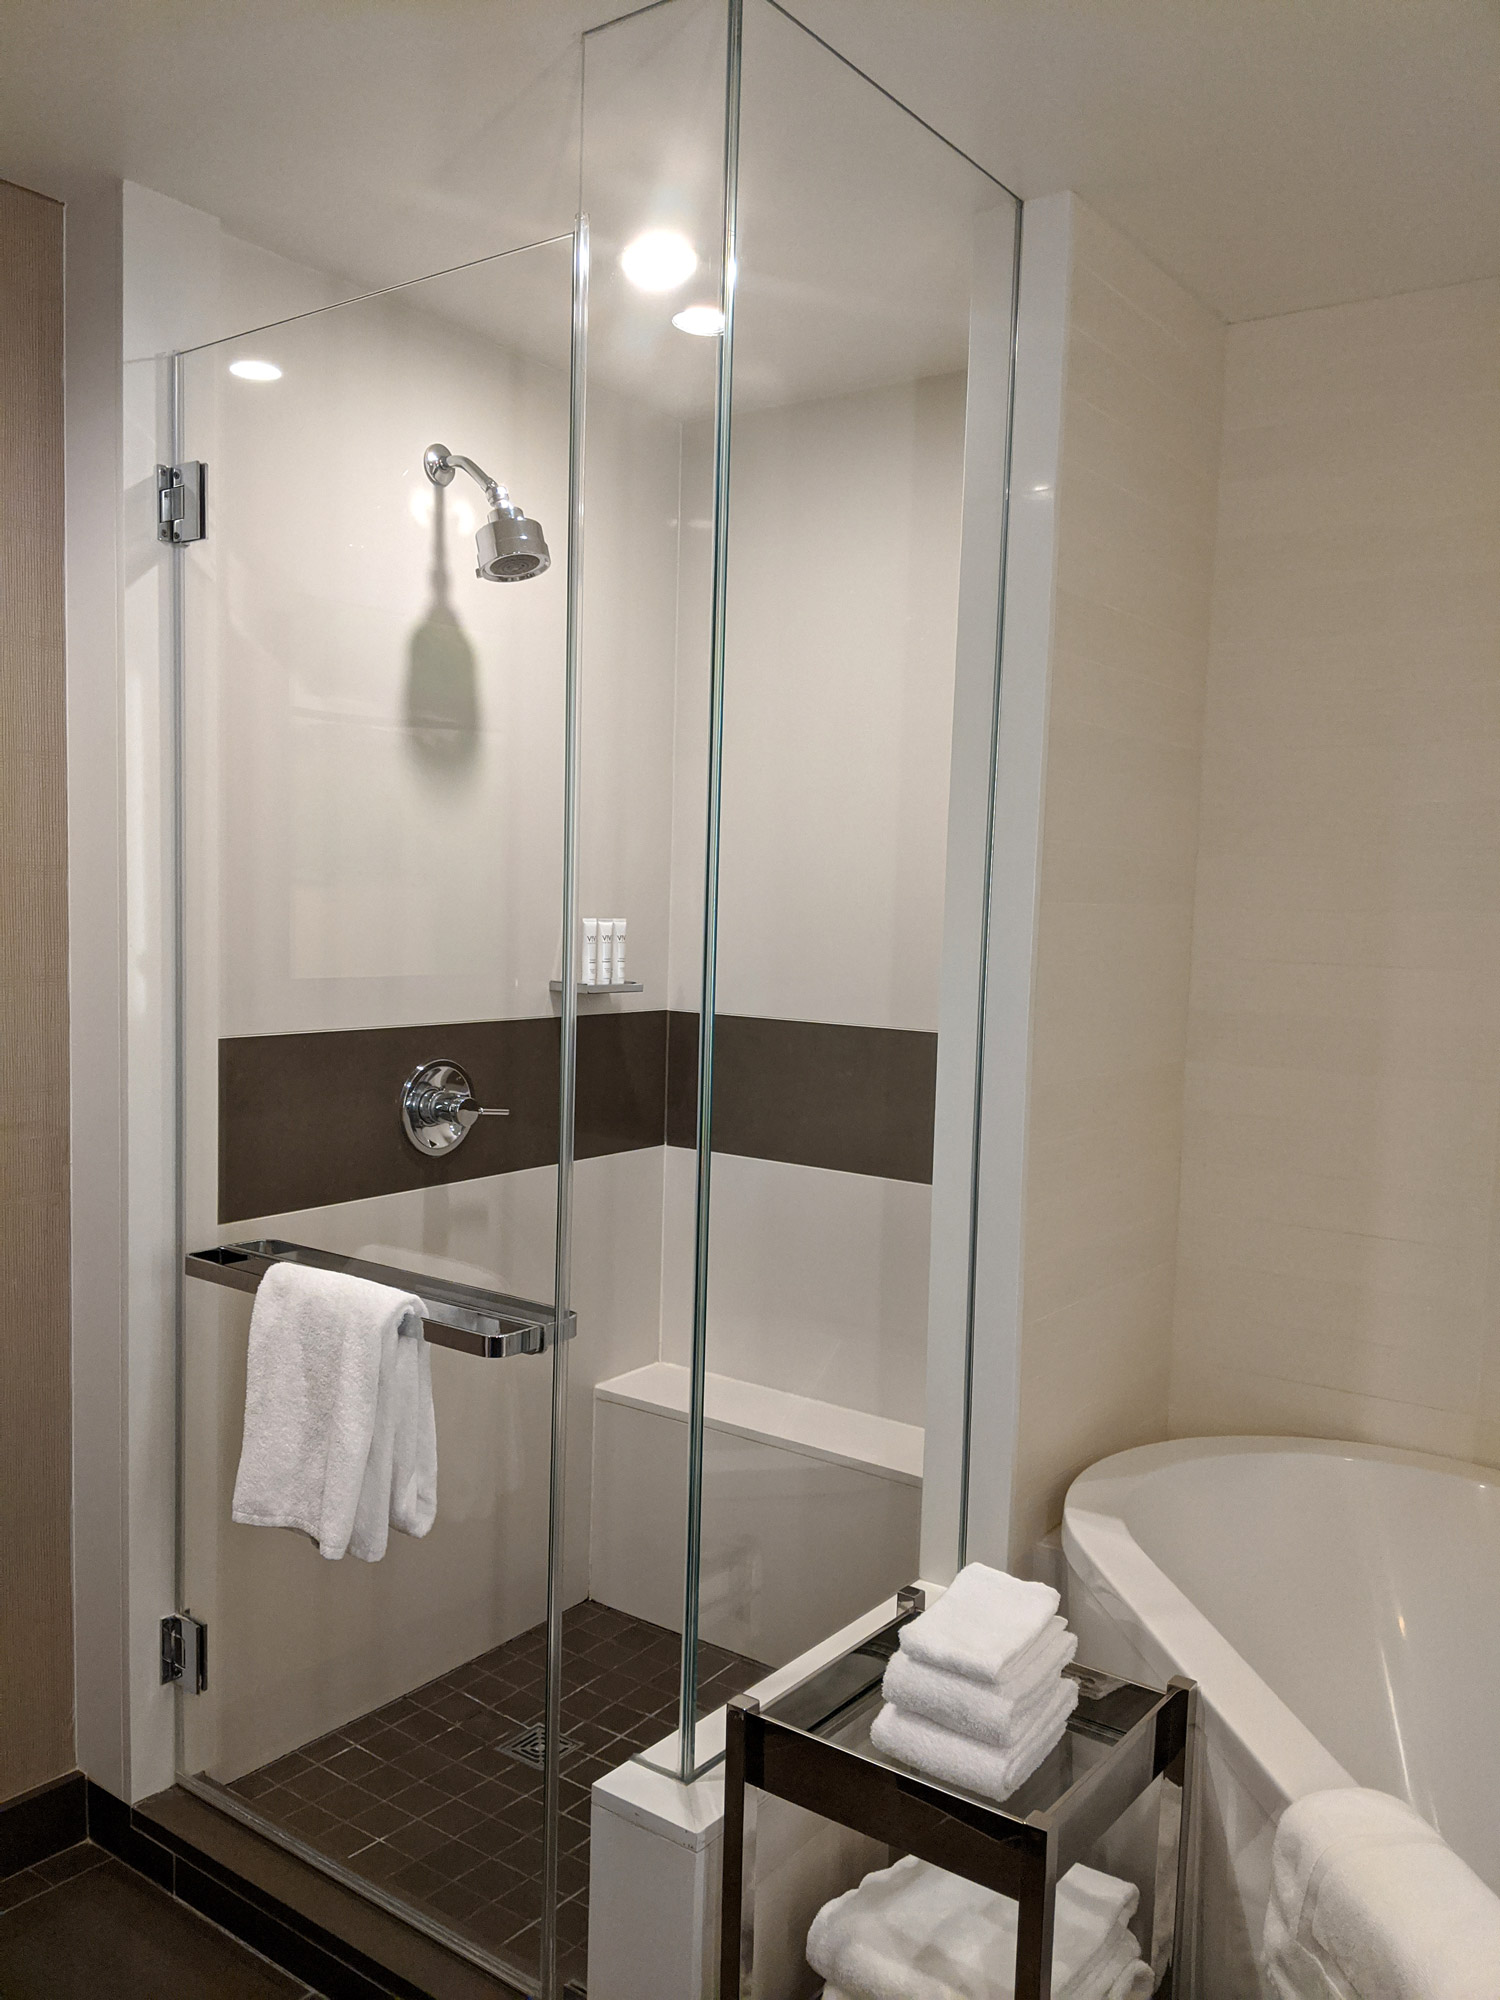 las-vegas-vdara-studio-parlour-double-room-review-8